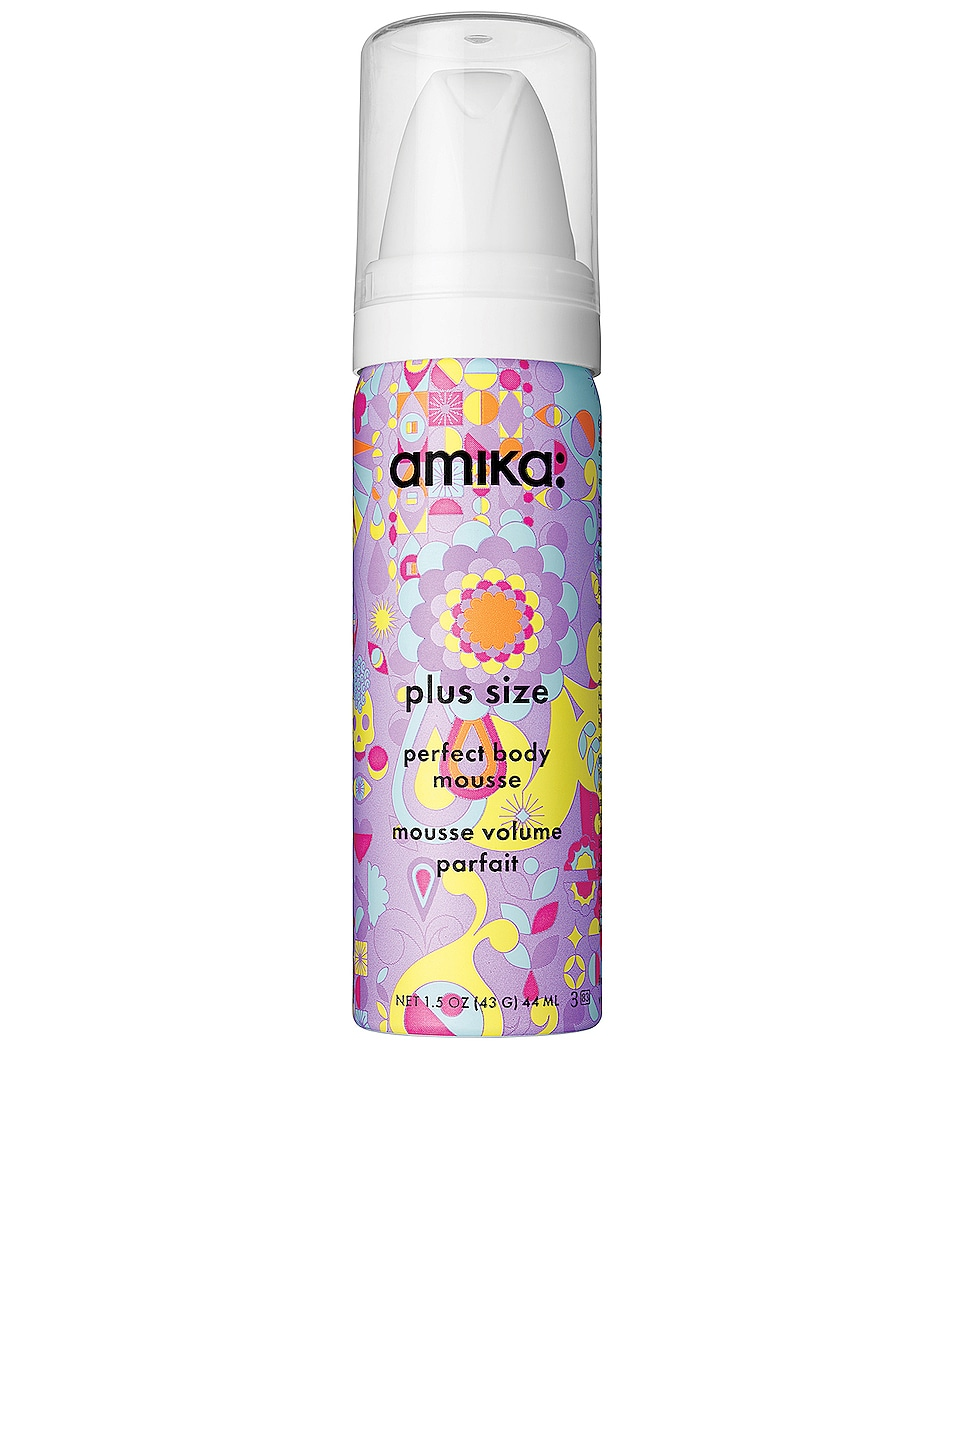 Amika Travel Plus Size Volume & Body Mousse